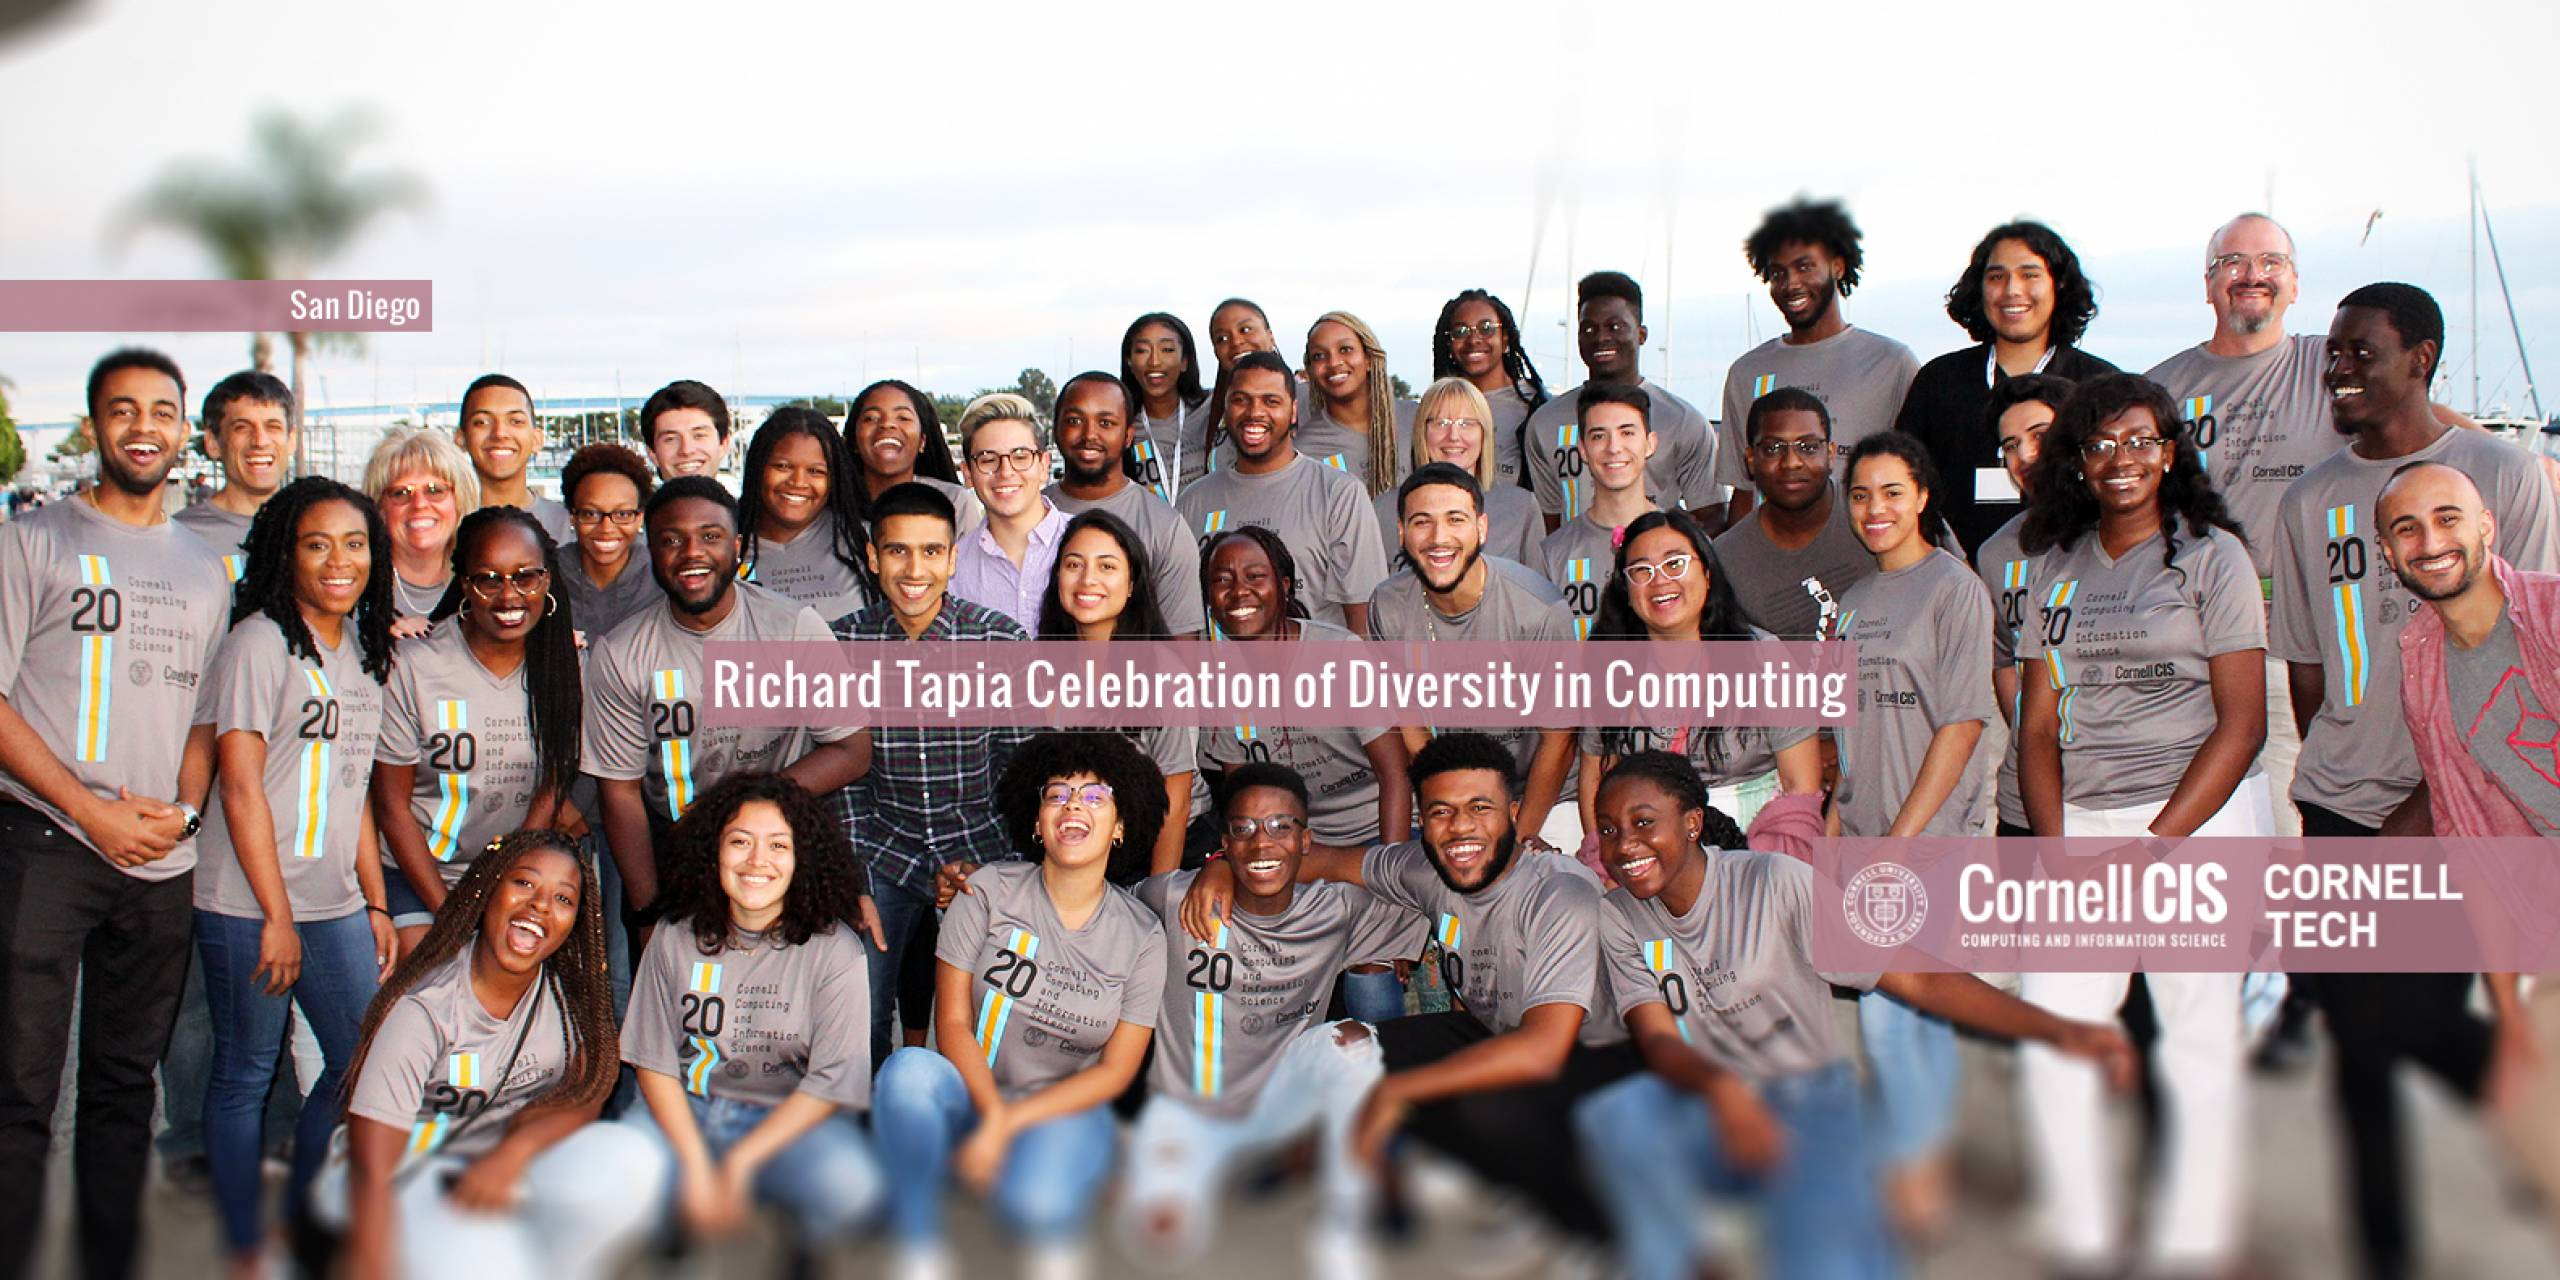 Richard Tapia Celebration of Diversity in Computing